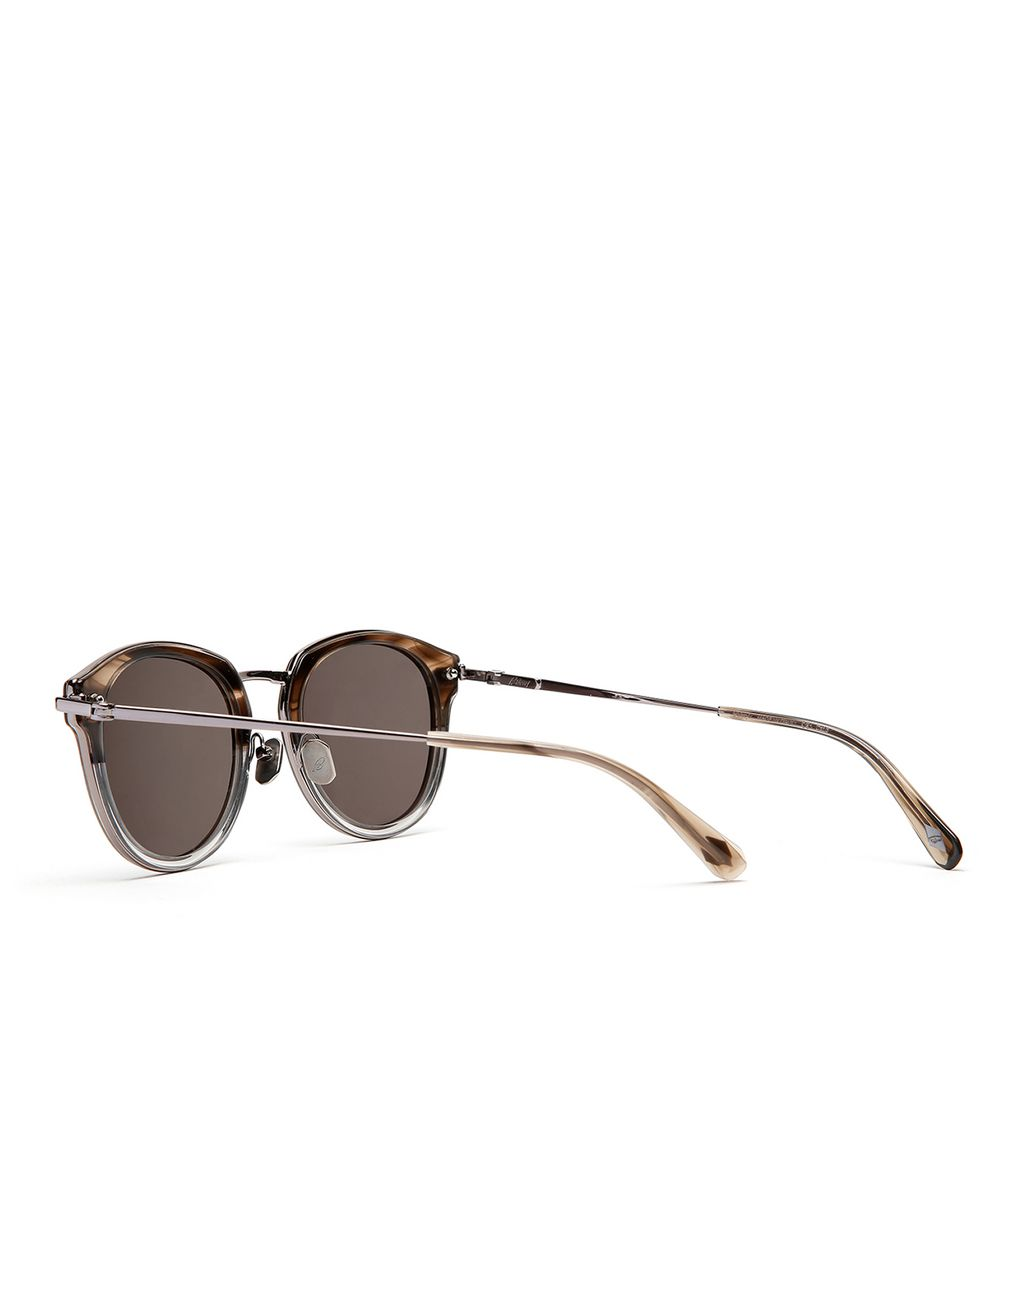 BRIONI Grey and Brown Sunglasses with Grey Lenses  Sunglasses Man d